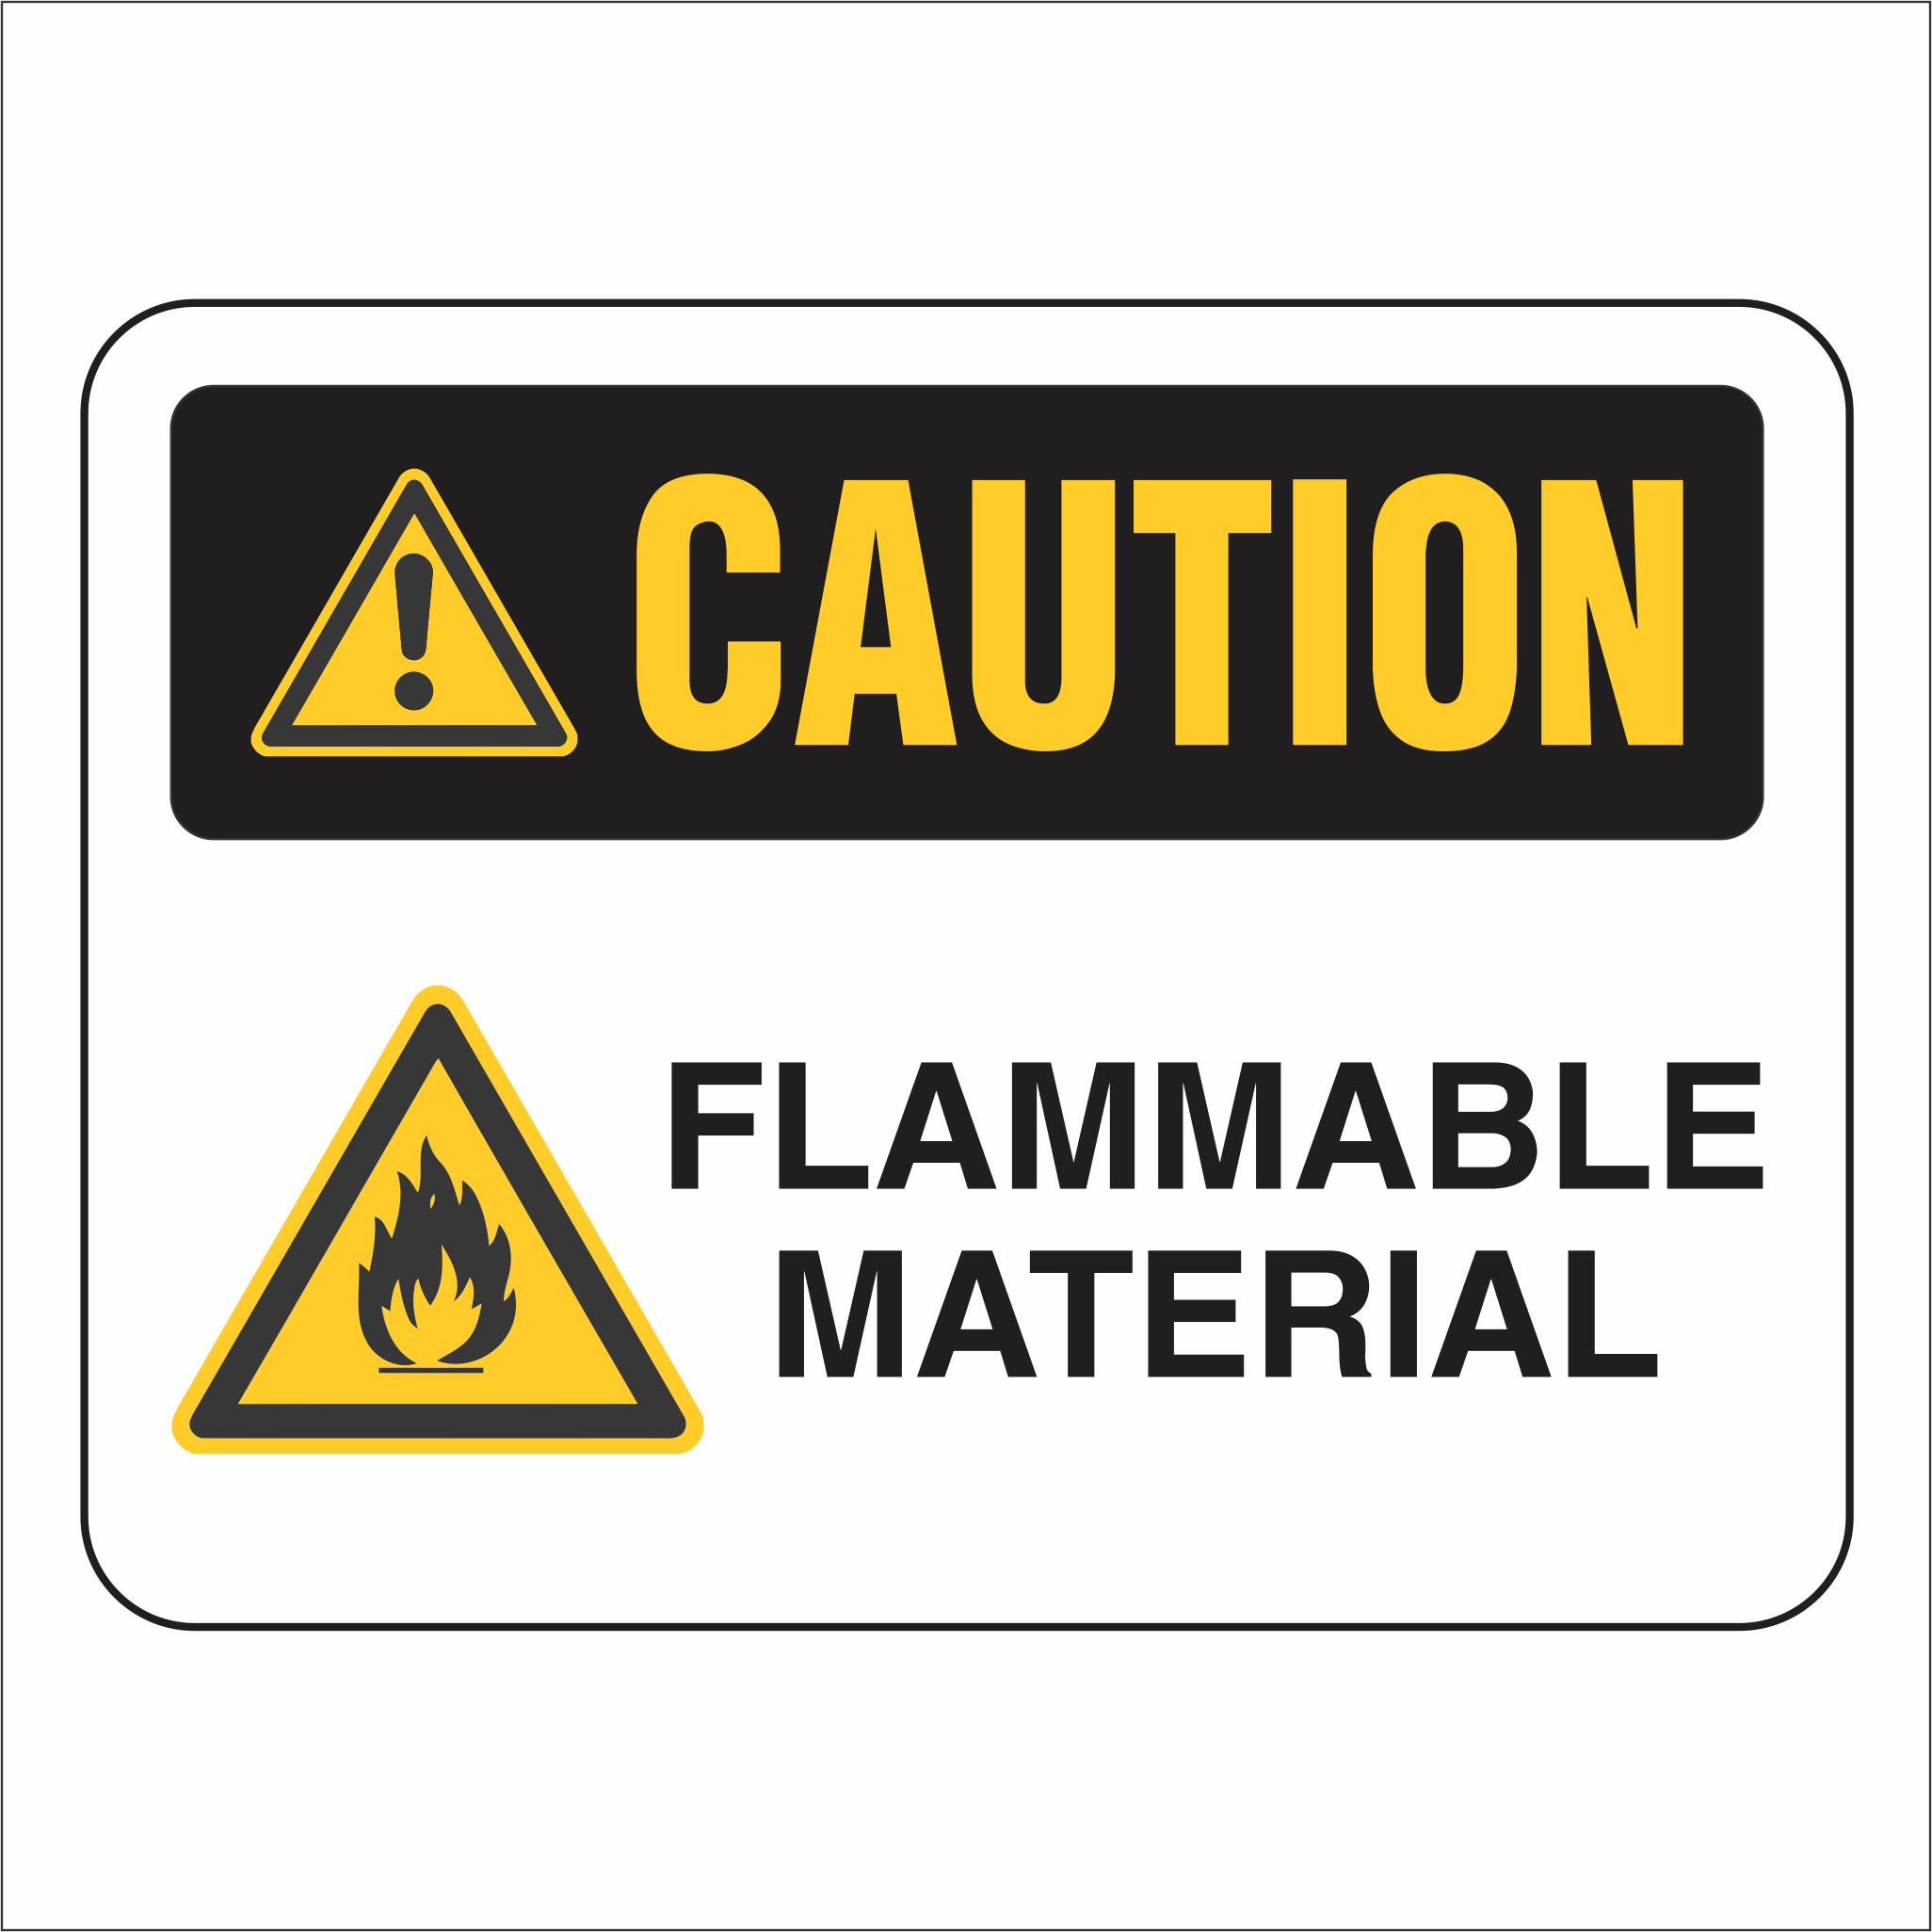 Flammable Material - Caution - Sign